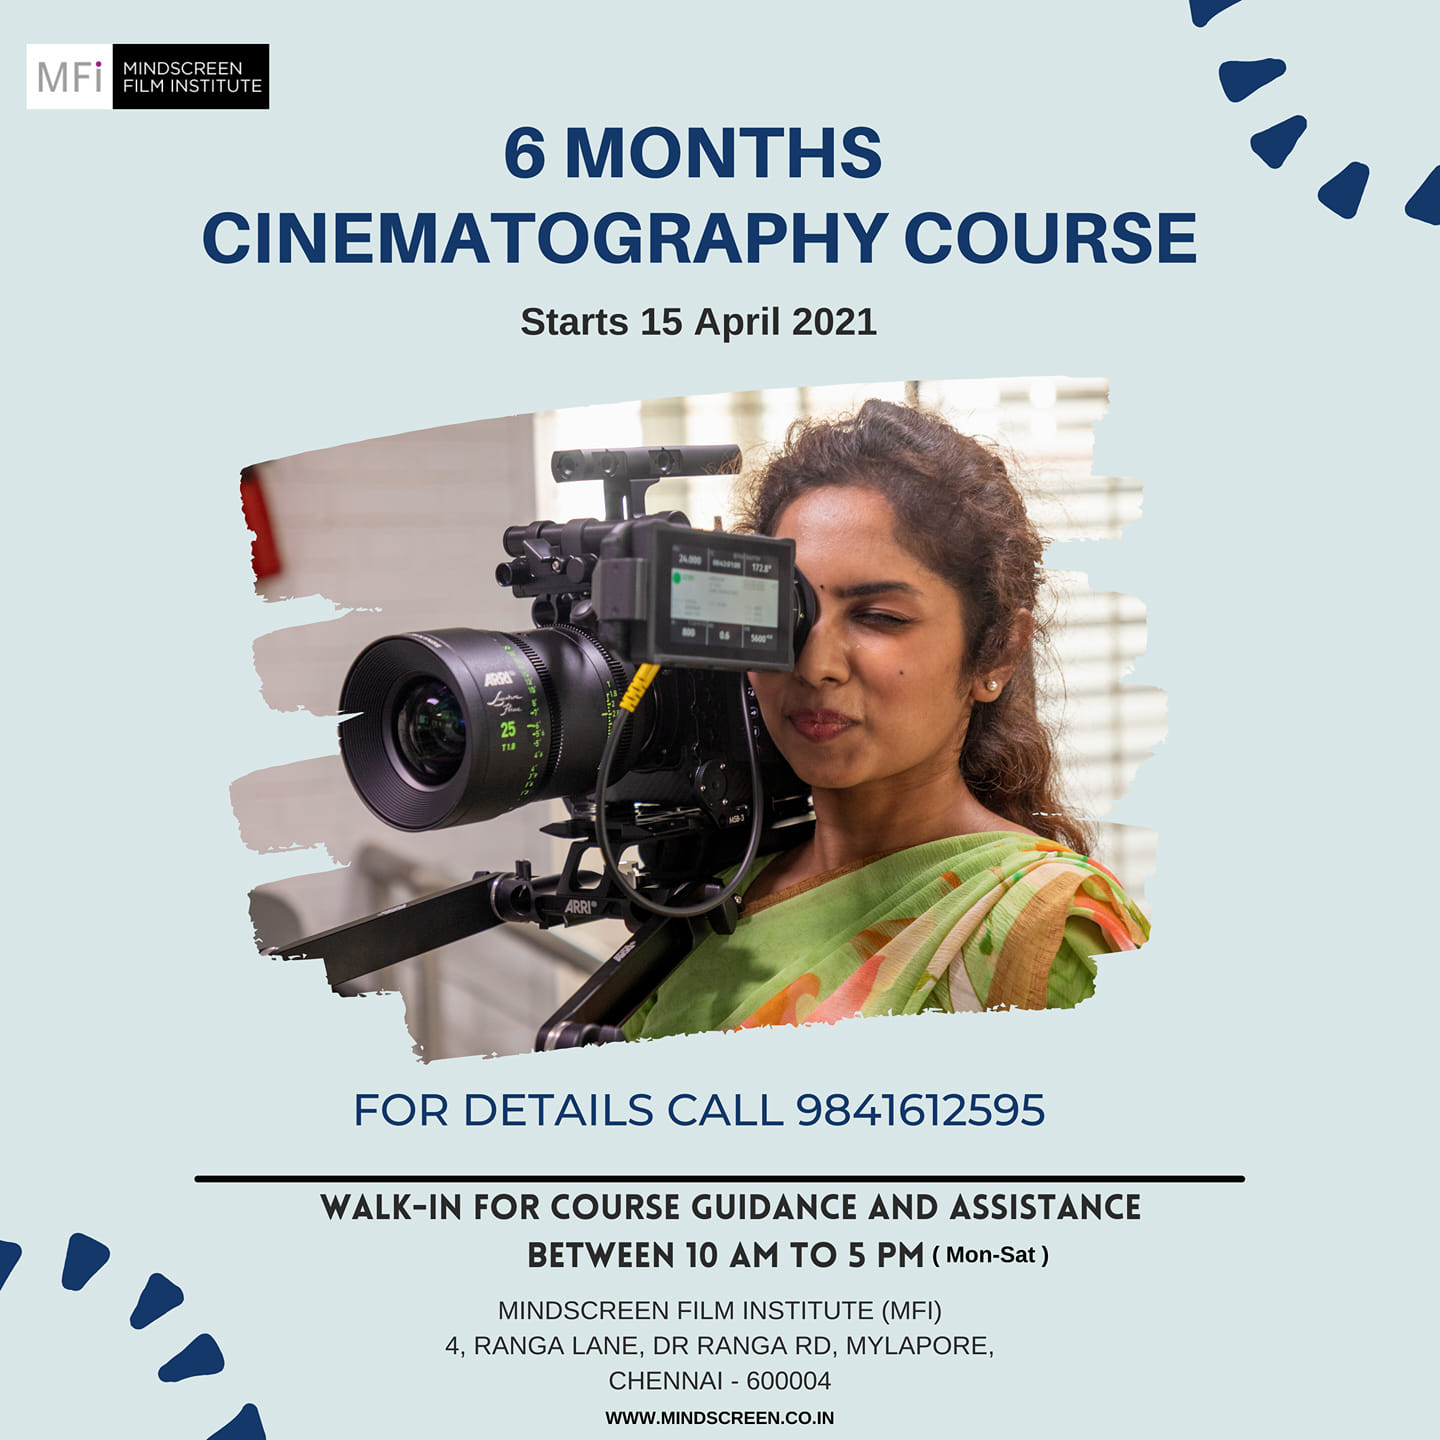 Nine Months Course in Cinematography JUNE 2020 to FEBRUARY 2021 Admissions on Apply Now SEAT WILL BE ALLOTTED ON FIRST COME FIRST BASIS   The Philosophy behind the Nine Months Cinematography course has been to awaken the creative personality hidden in many people who have not had the opportunity to explore Photography/ Cinematography as a career. These are people who love taking pictures but have been baffled by the technologies involved in digital Photography/Cinematography, or those who are inspired by the beauty of what they see but are frustrated that they cannot transform that experience into a great picture. The course is meant to guide such people and give them a start in the right direction.   Applications can be downloaded from https://www.mindscreen.co.in/pdf/application.pdf and completed application form along with a recent passport size photograph and a DD for Rs.2500/- towards registration fees to be drawn in favor of MINDSCREEN FILM INSTITUTE, payable at Chennai to reach us on or before 15th Mar